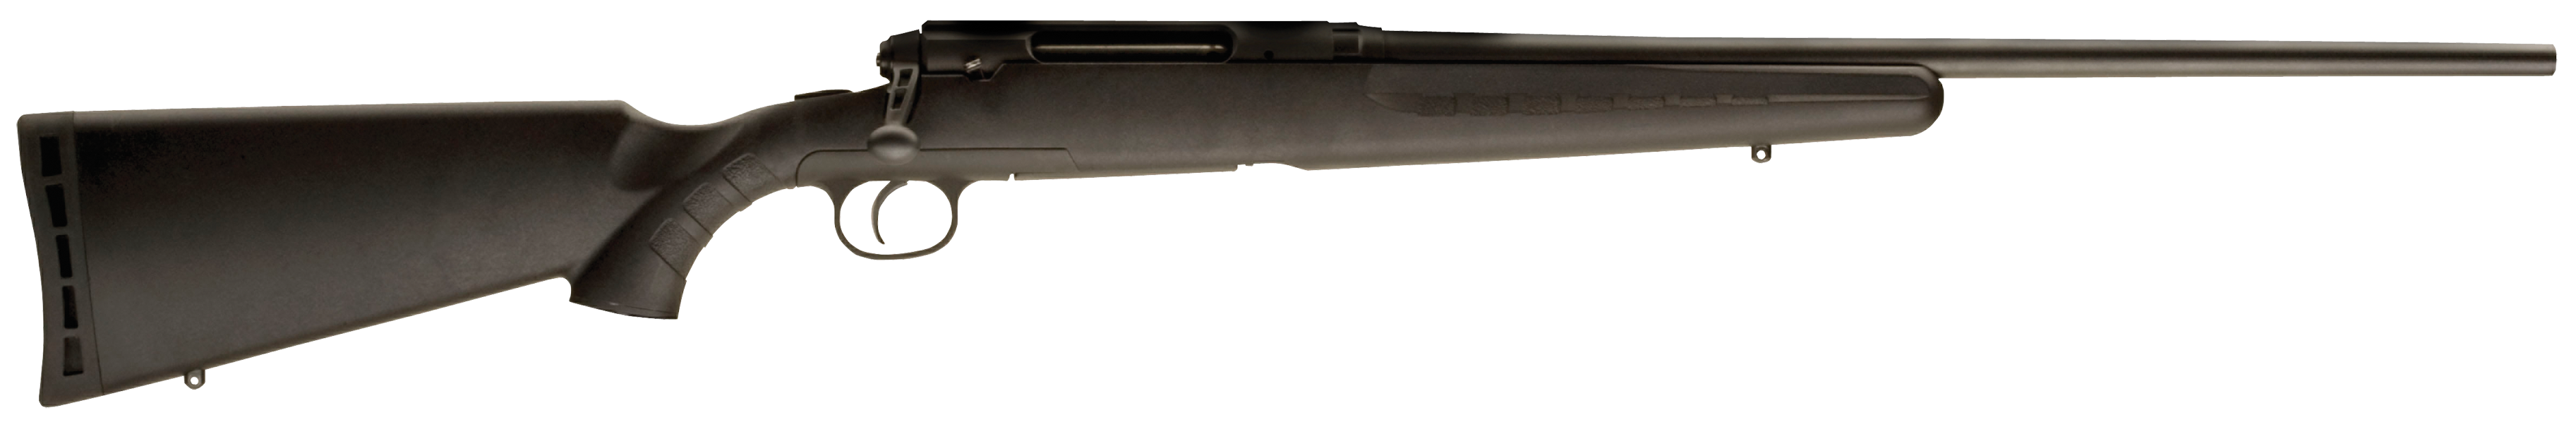 Bolt action rifle png. Quality rifles for